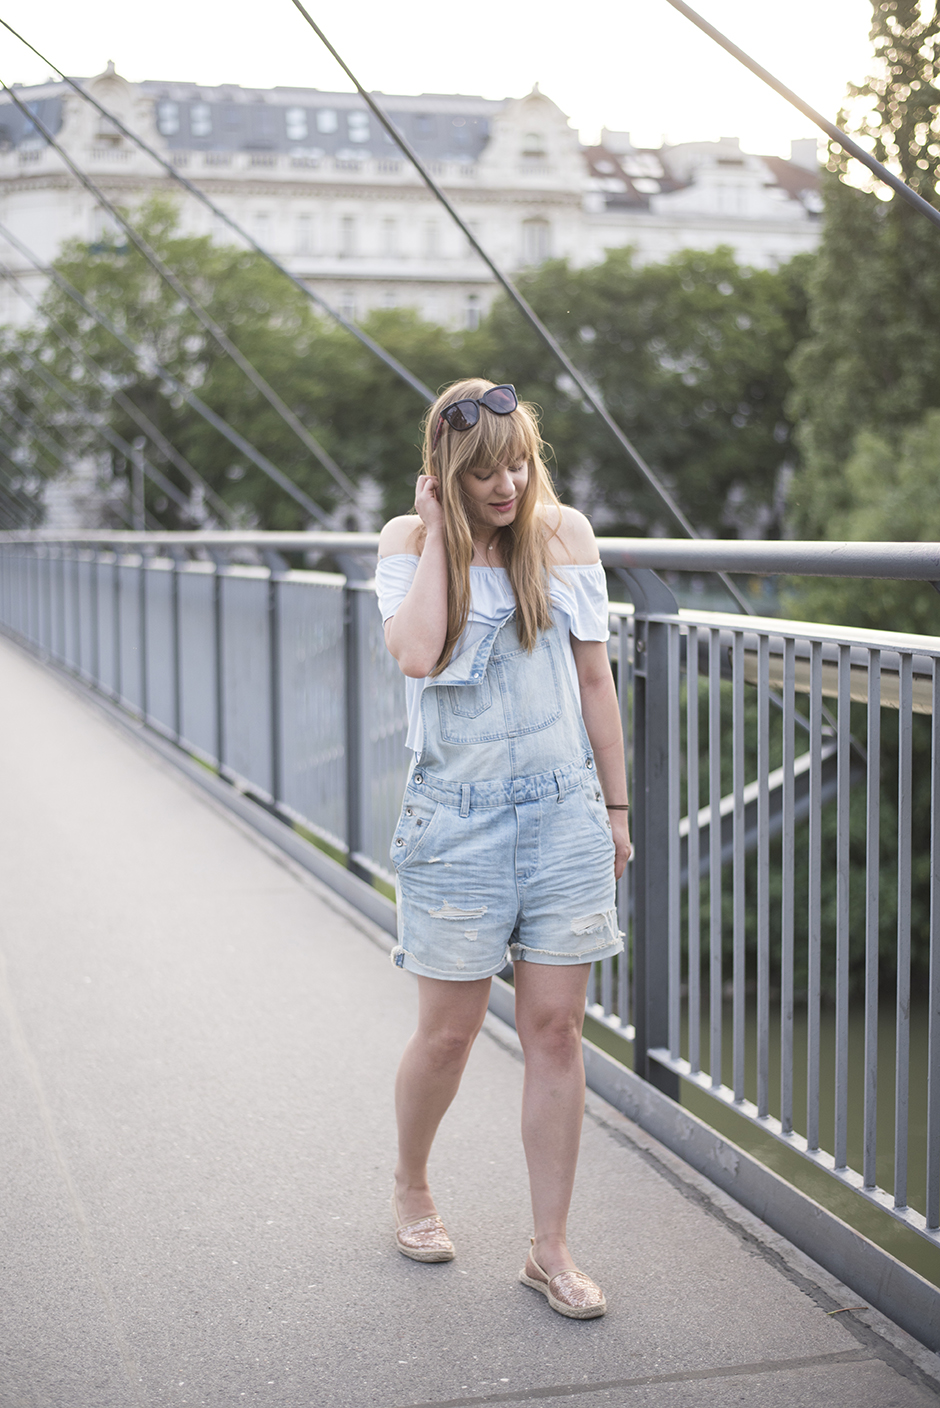 Blog Your Style Outfit Style Sandbox Fashionblog Wien Sommer Schuhe_11